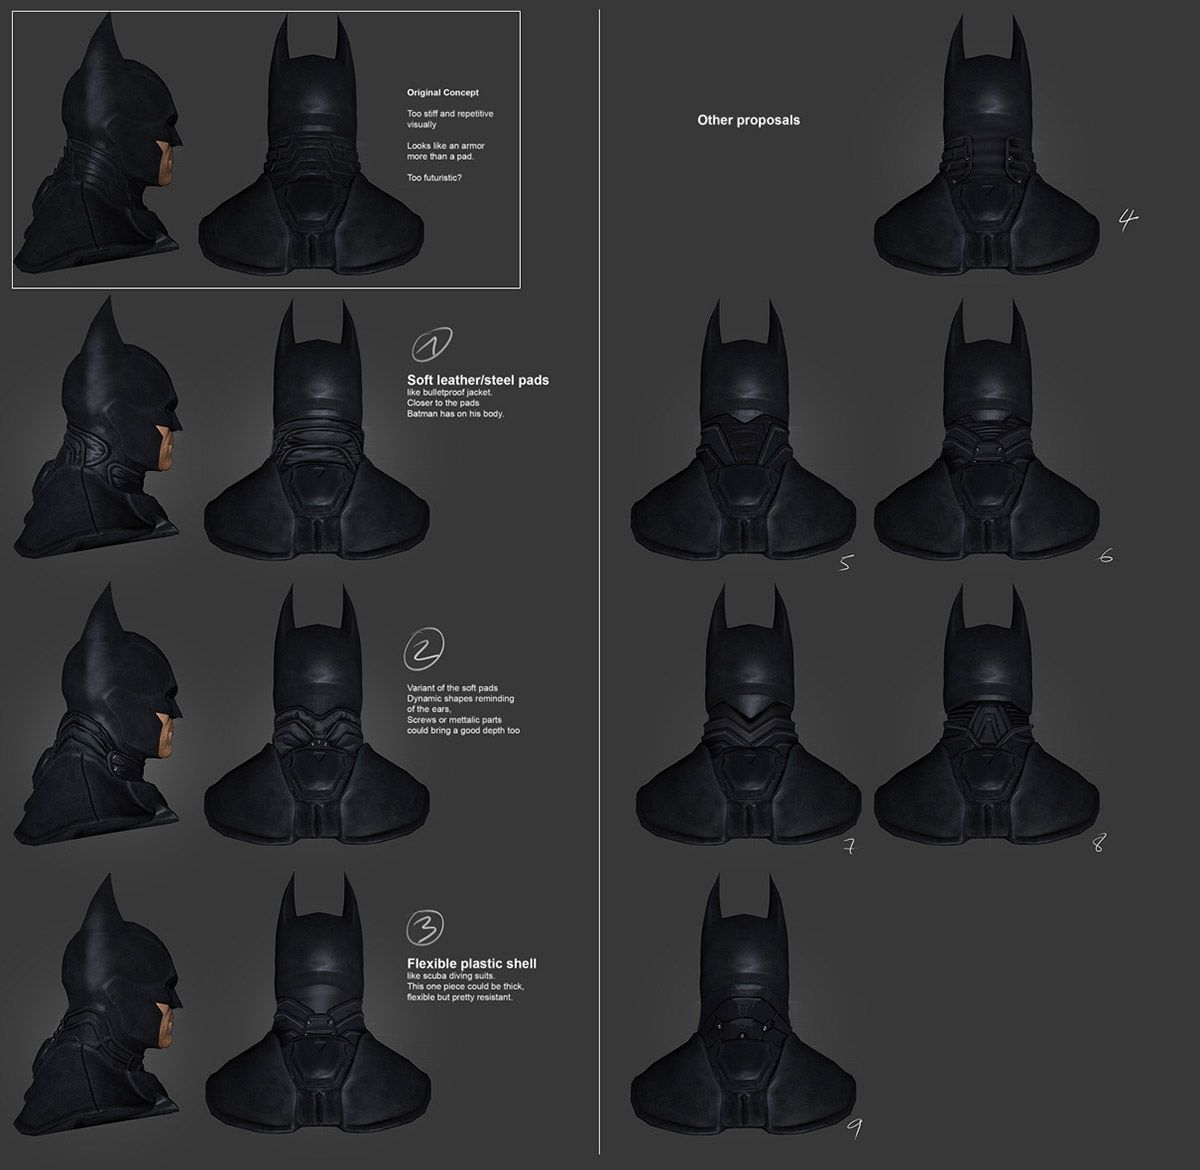 Batman Arkham Knight Batcave: How To Make The Batman Suit In Arkham Knights Blueprints